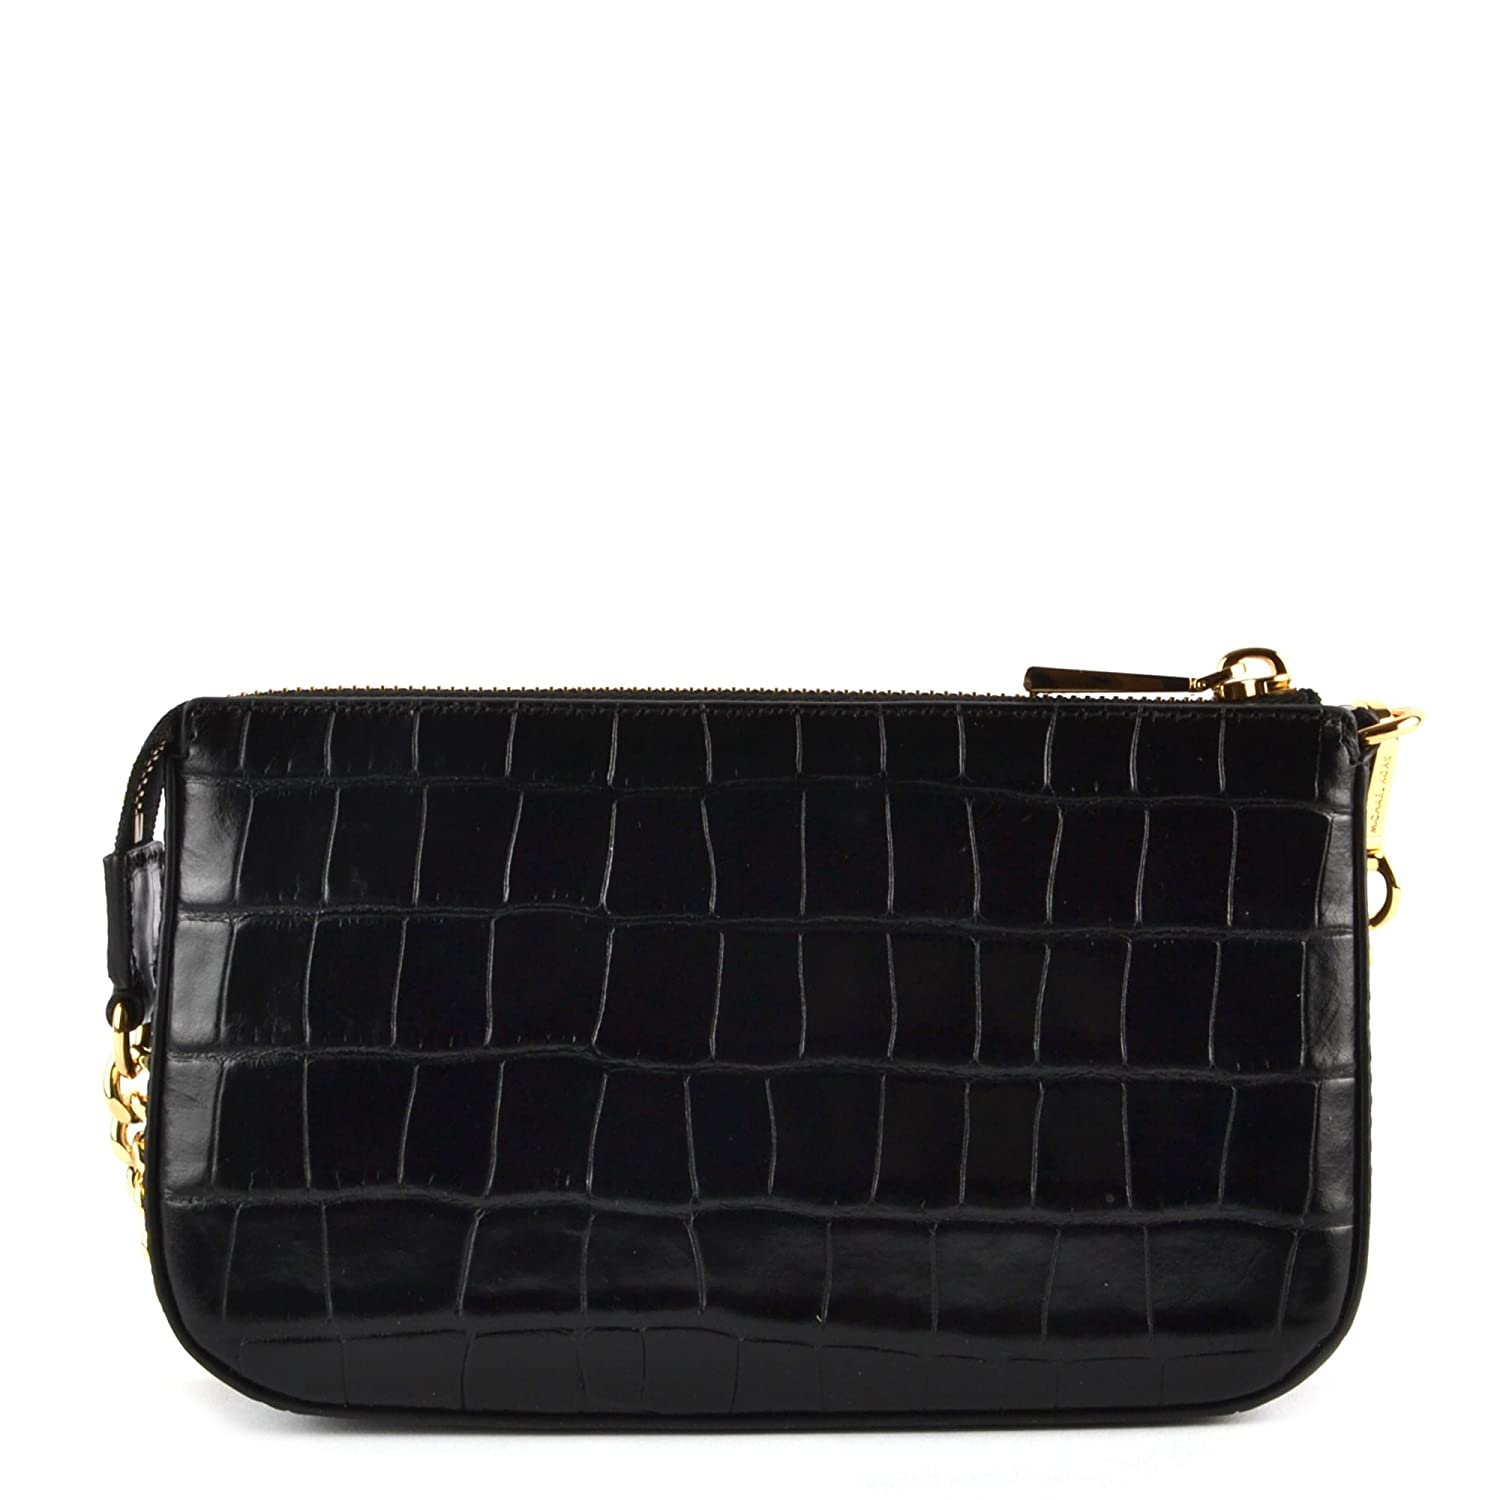 24ef9ad9820f2a MICHAEL by Michael Kors Jet Set Black Embossed Leather Chain Shoulder Wallet  Black one size: Amazon.co.uk: Clothing